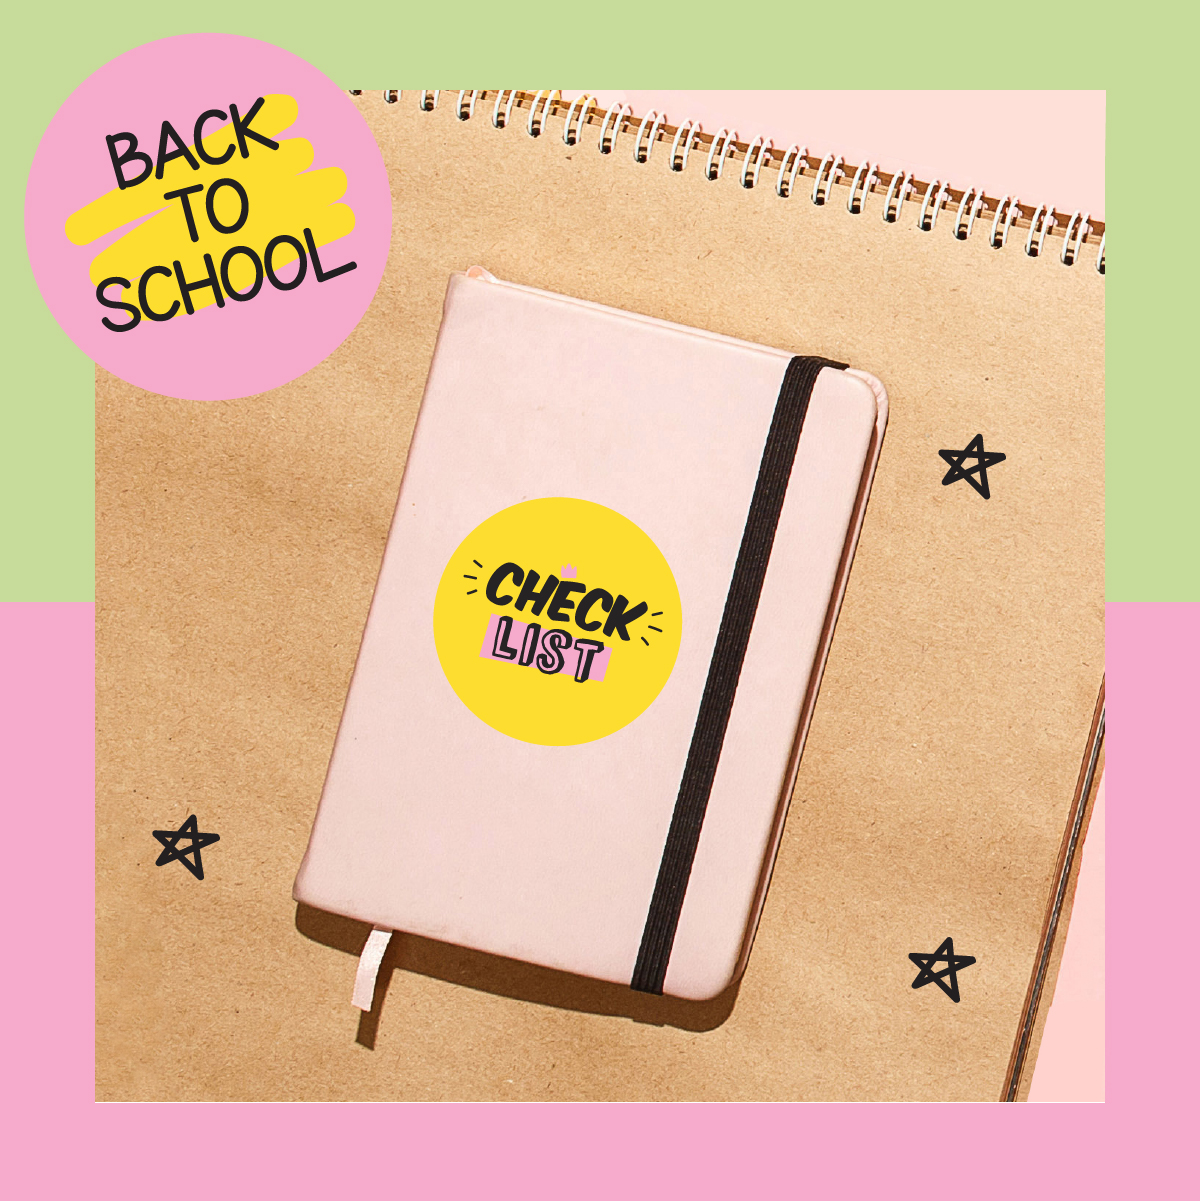 The Ultimate Back to School Checklist for 2021